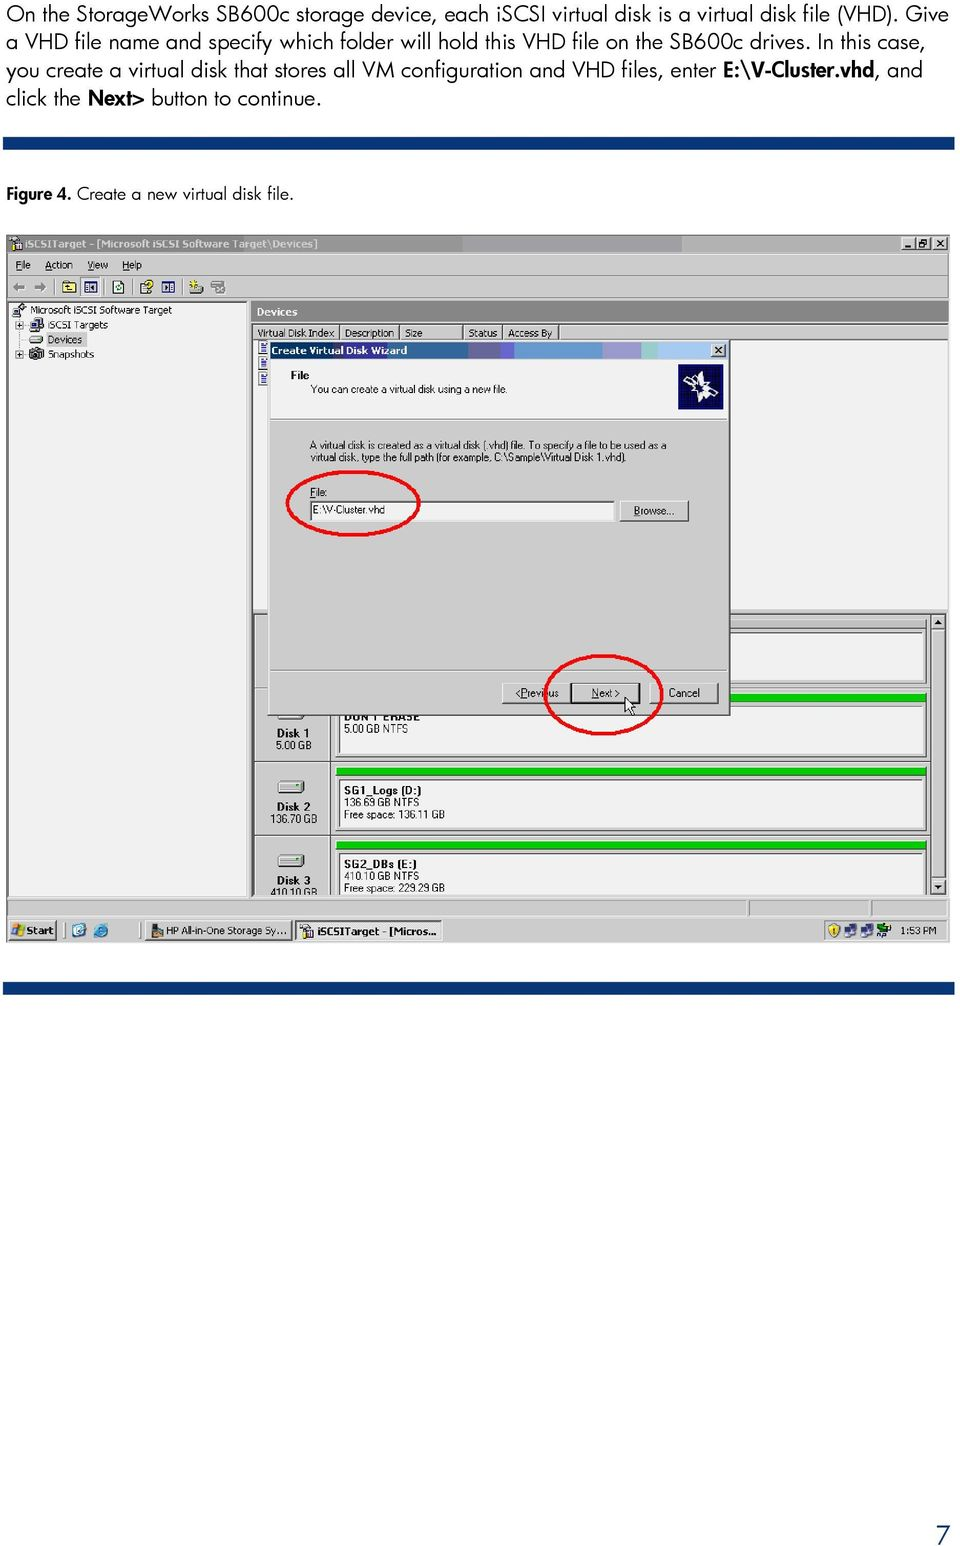 In this case, you create a virtual disk that stores all VM configuration and VHD files, enter